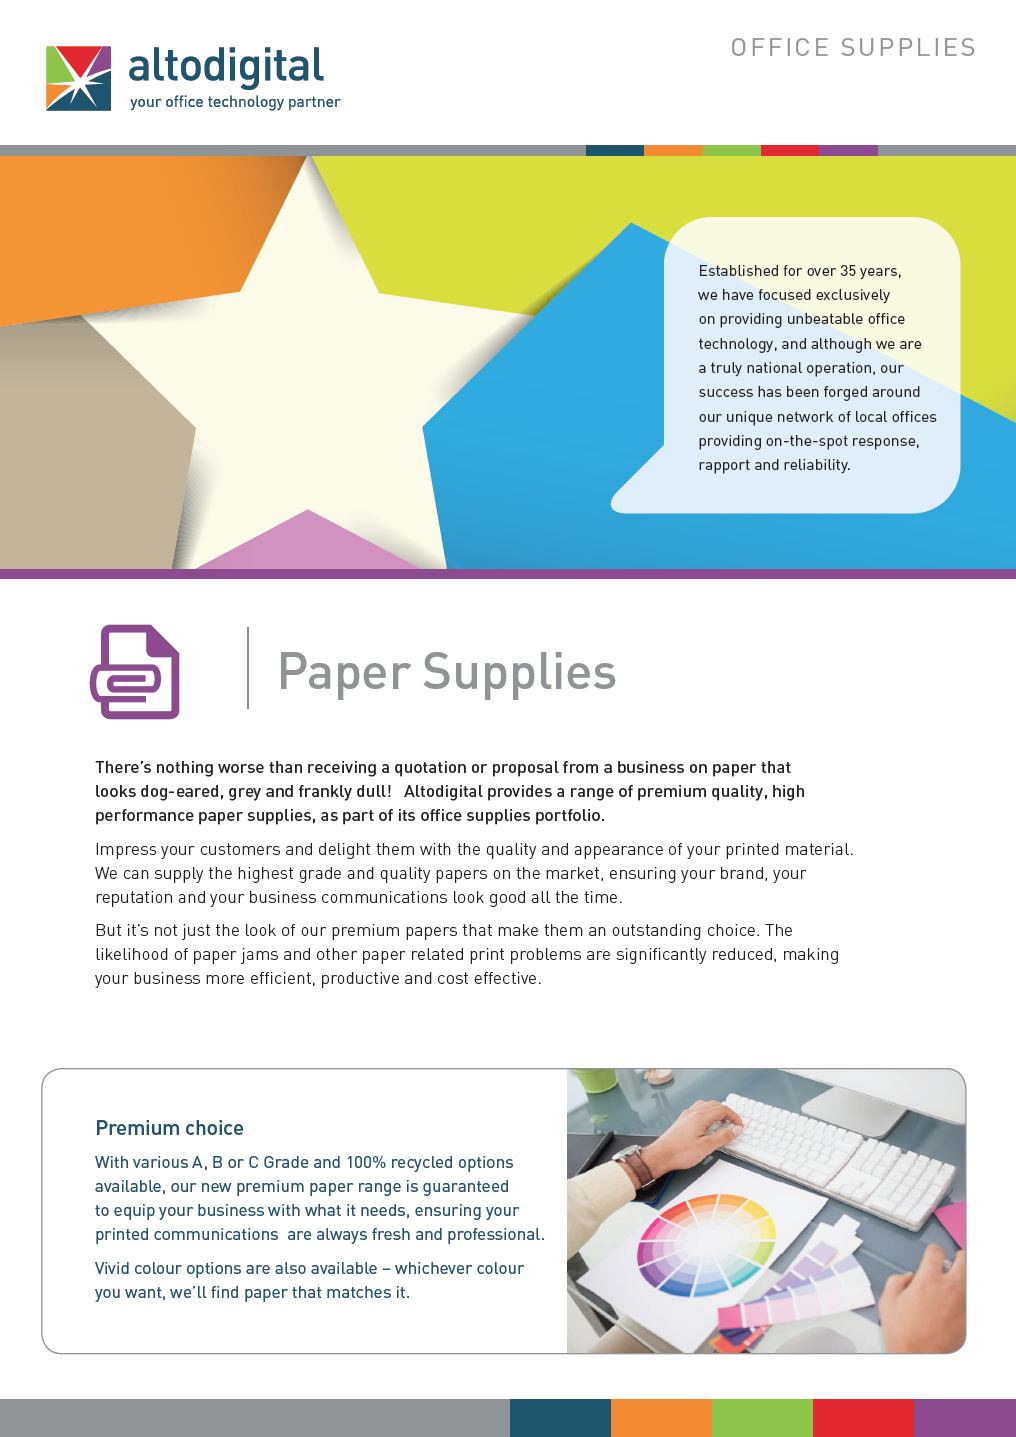 Learn about our range of paper supplies